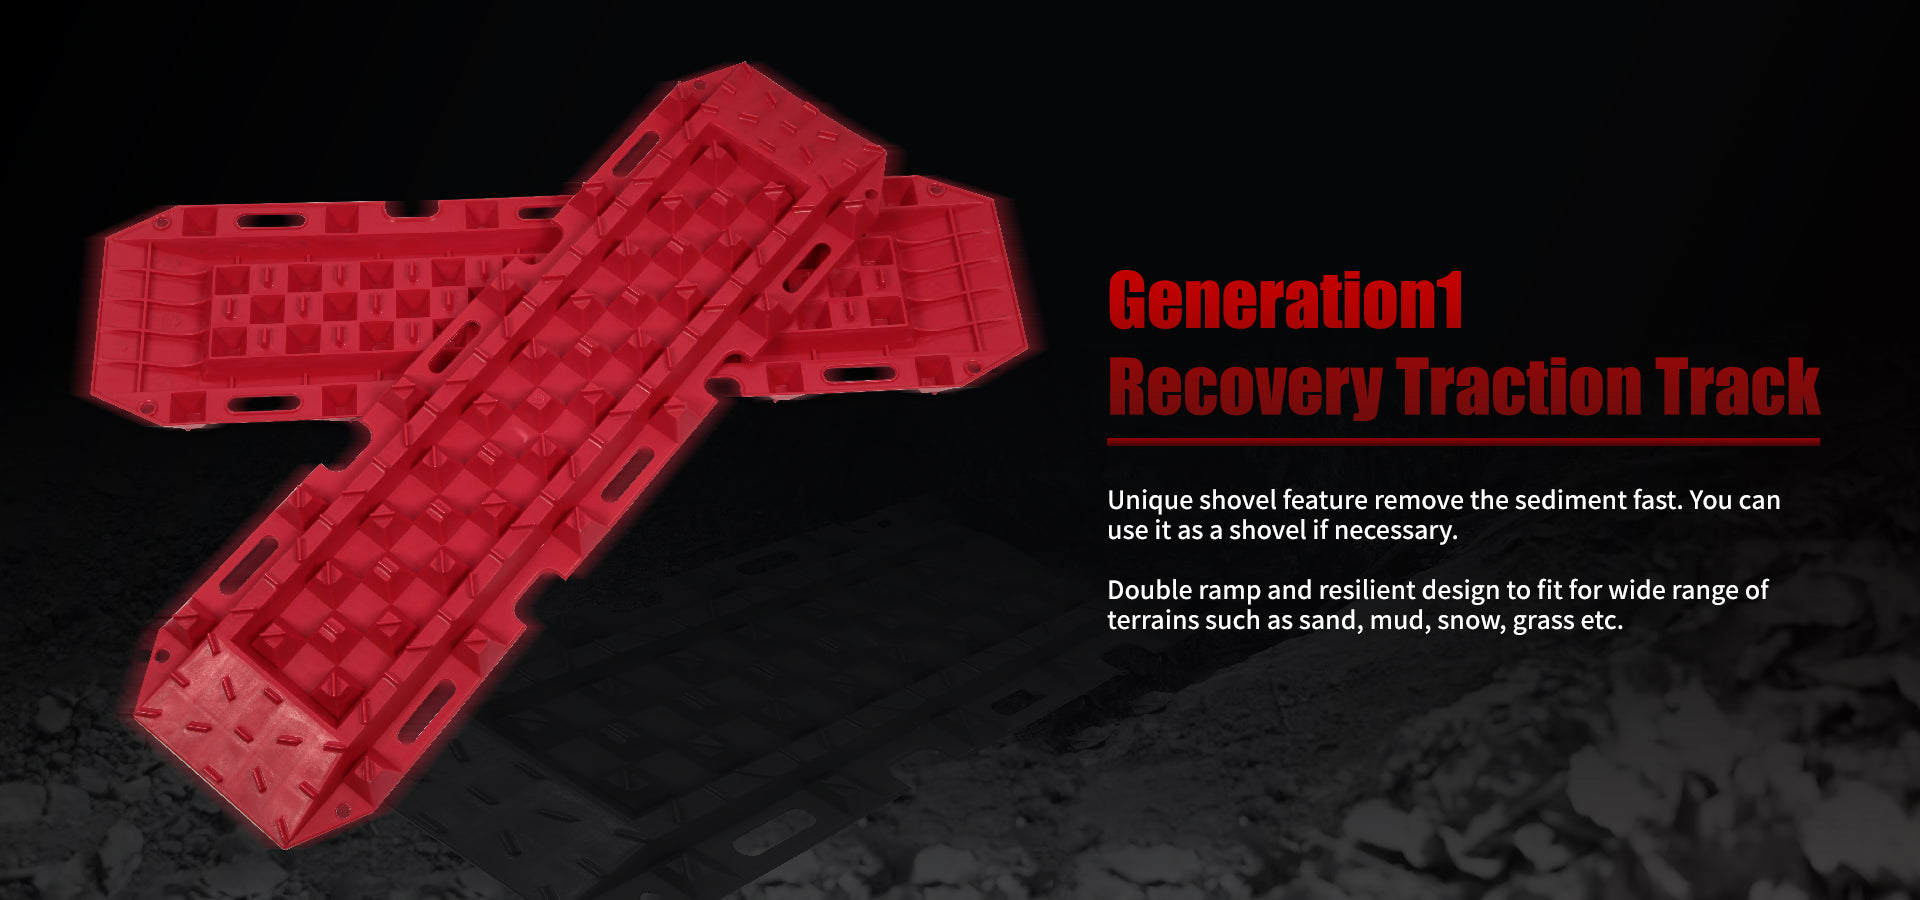 openroad-generation1-recovery-traction-track